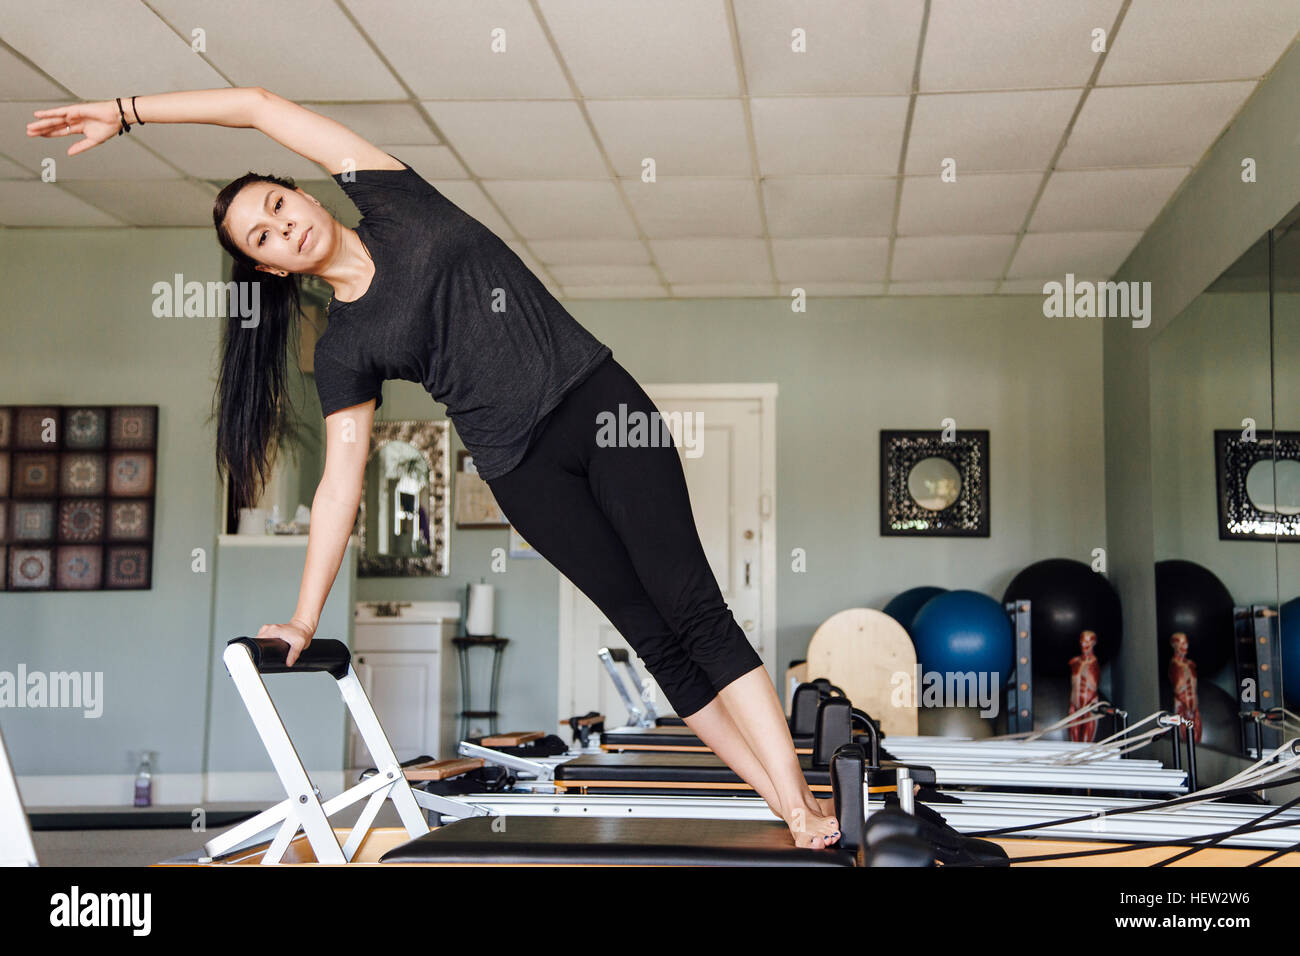 Woman in gym using pilates reformer - Stock Image